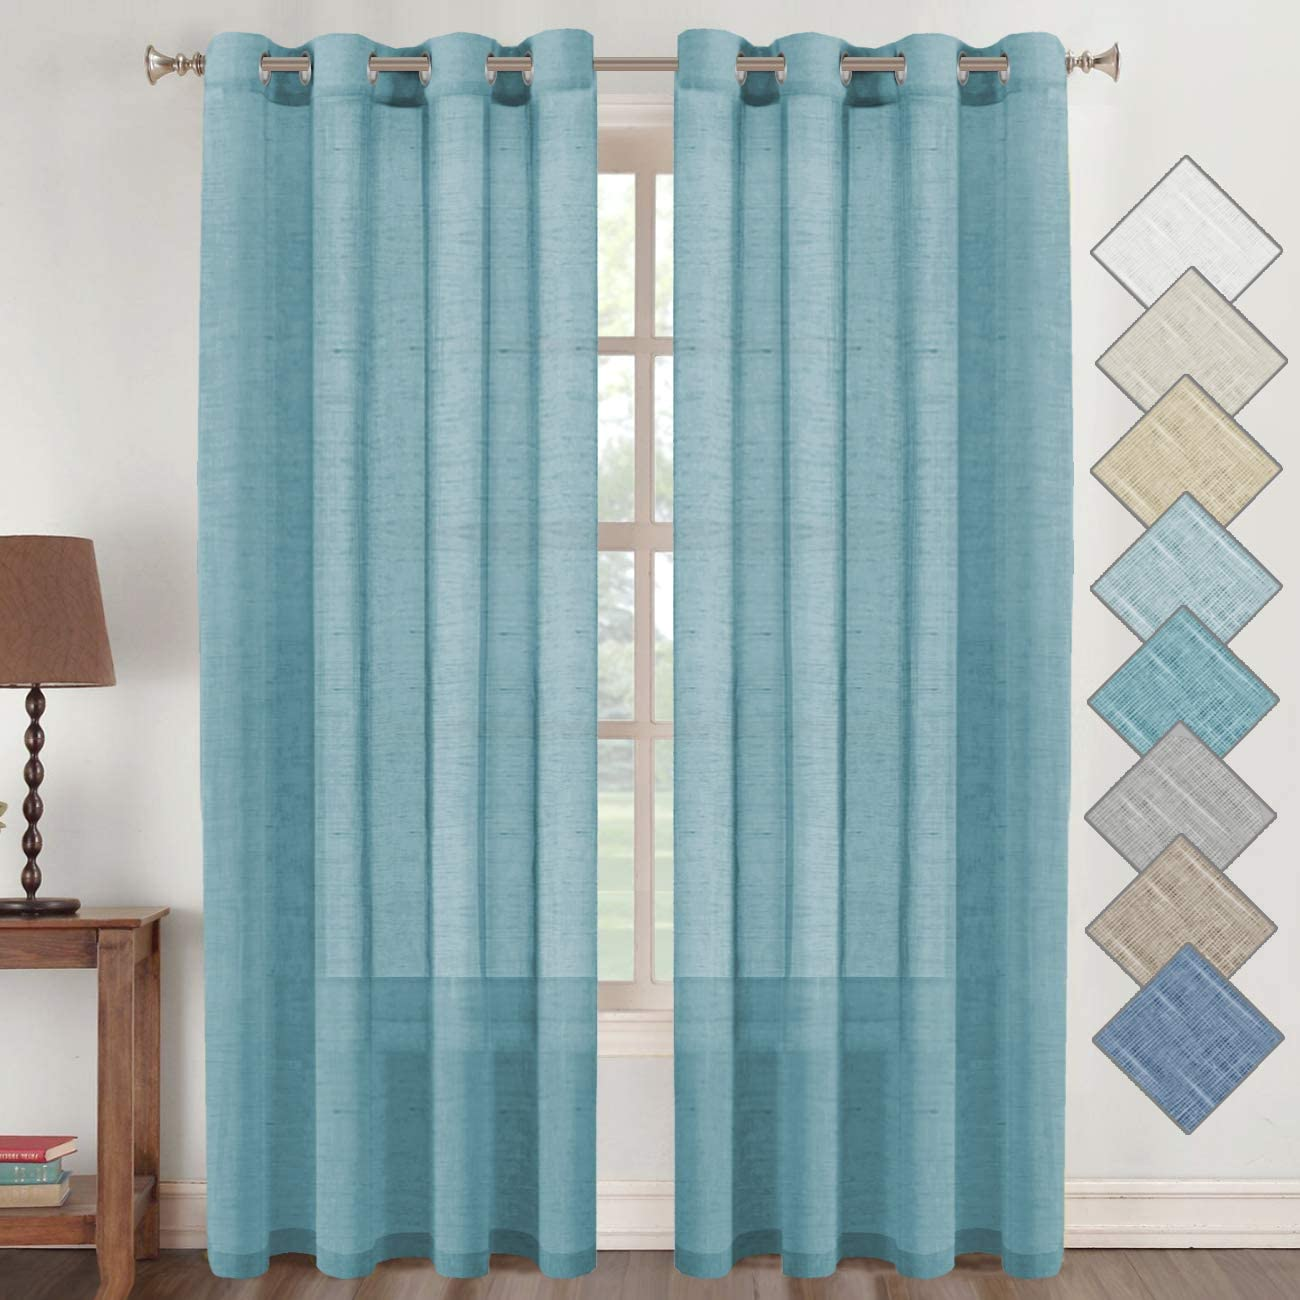 Flamingo P Elegant Linen Sheer Curtains, Natural Linen Home Fashion Privacy Protection, Open Weave Rich Linen Textured Nickel Grommet Curtains (Set of 2, 52 x 84 inch, Turquoise)